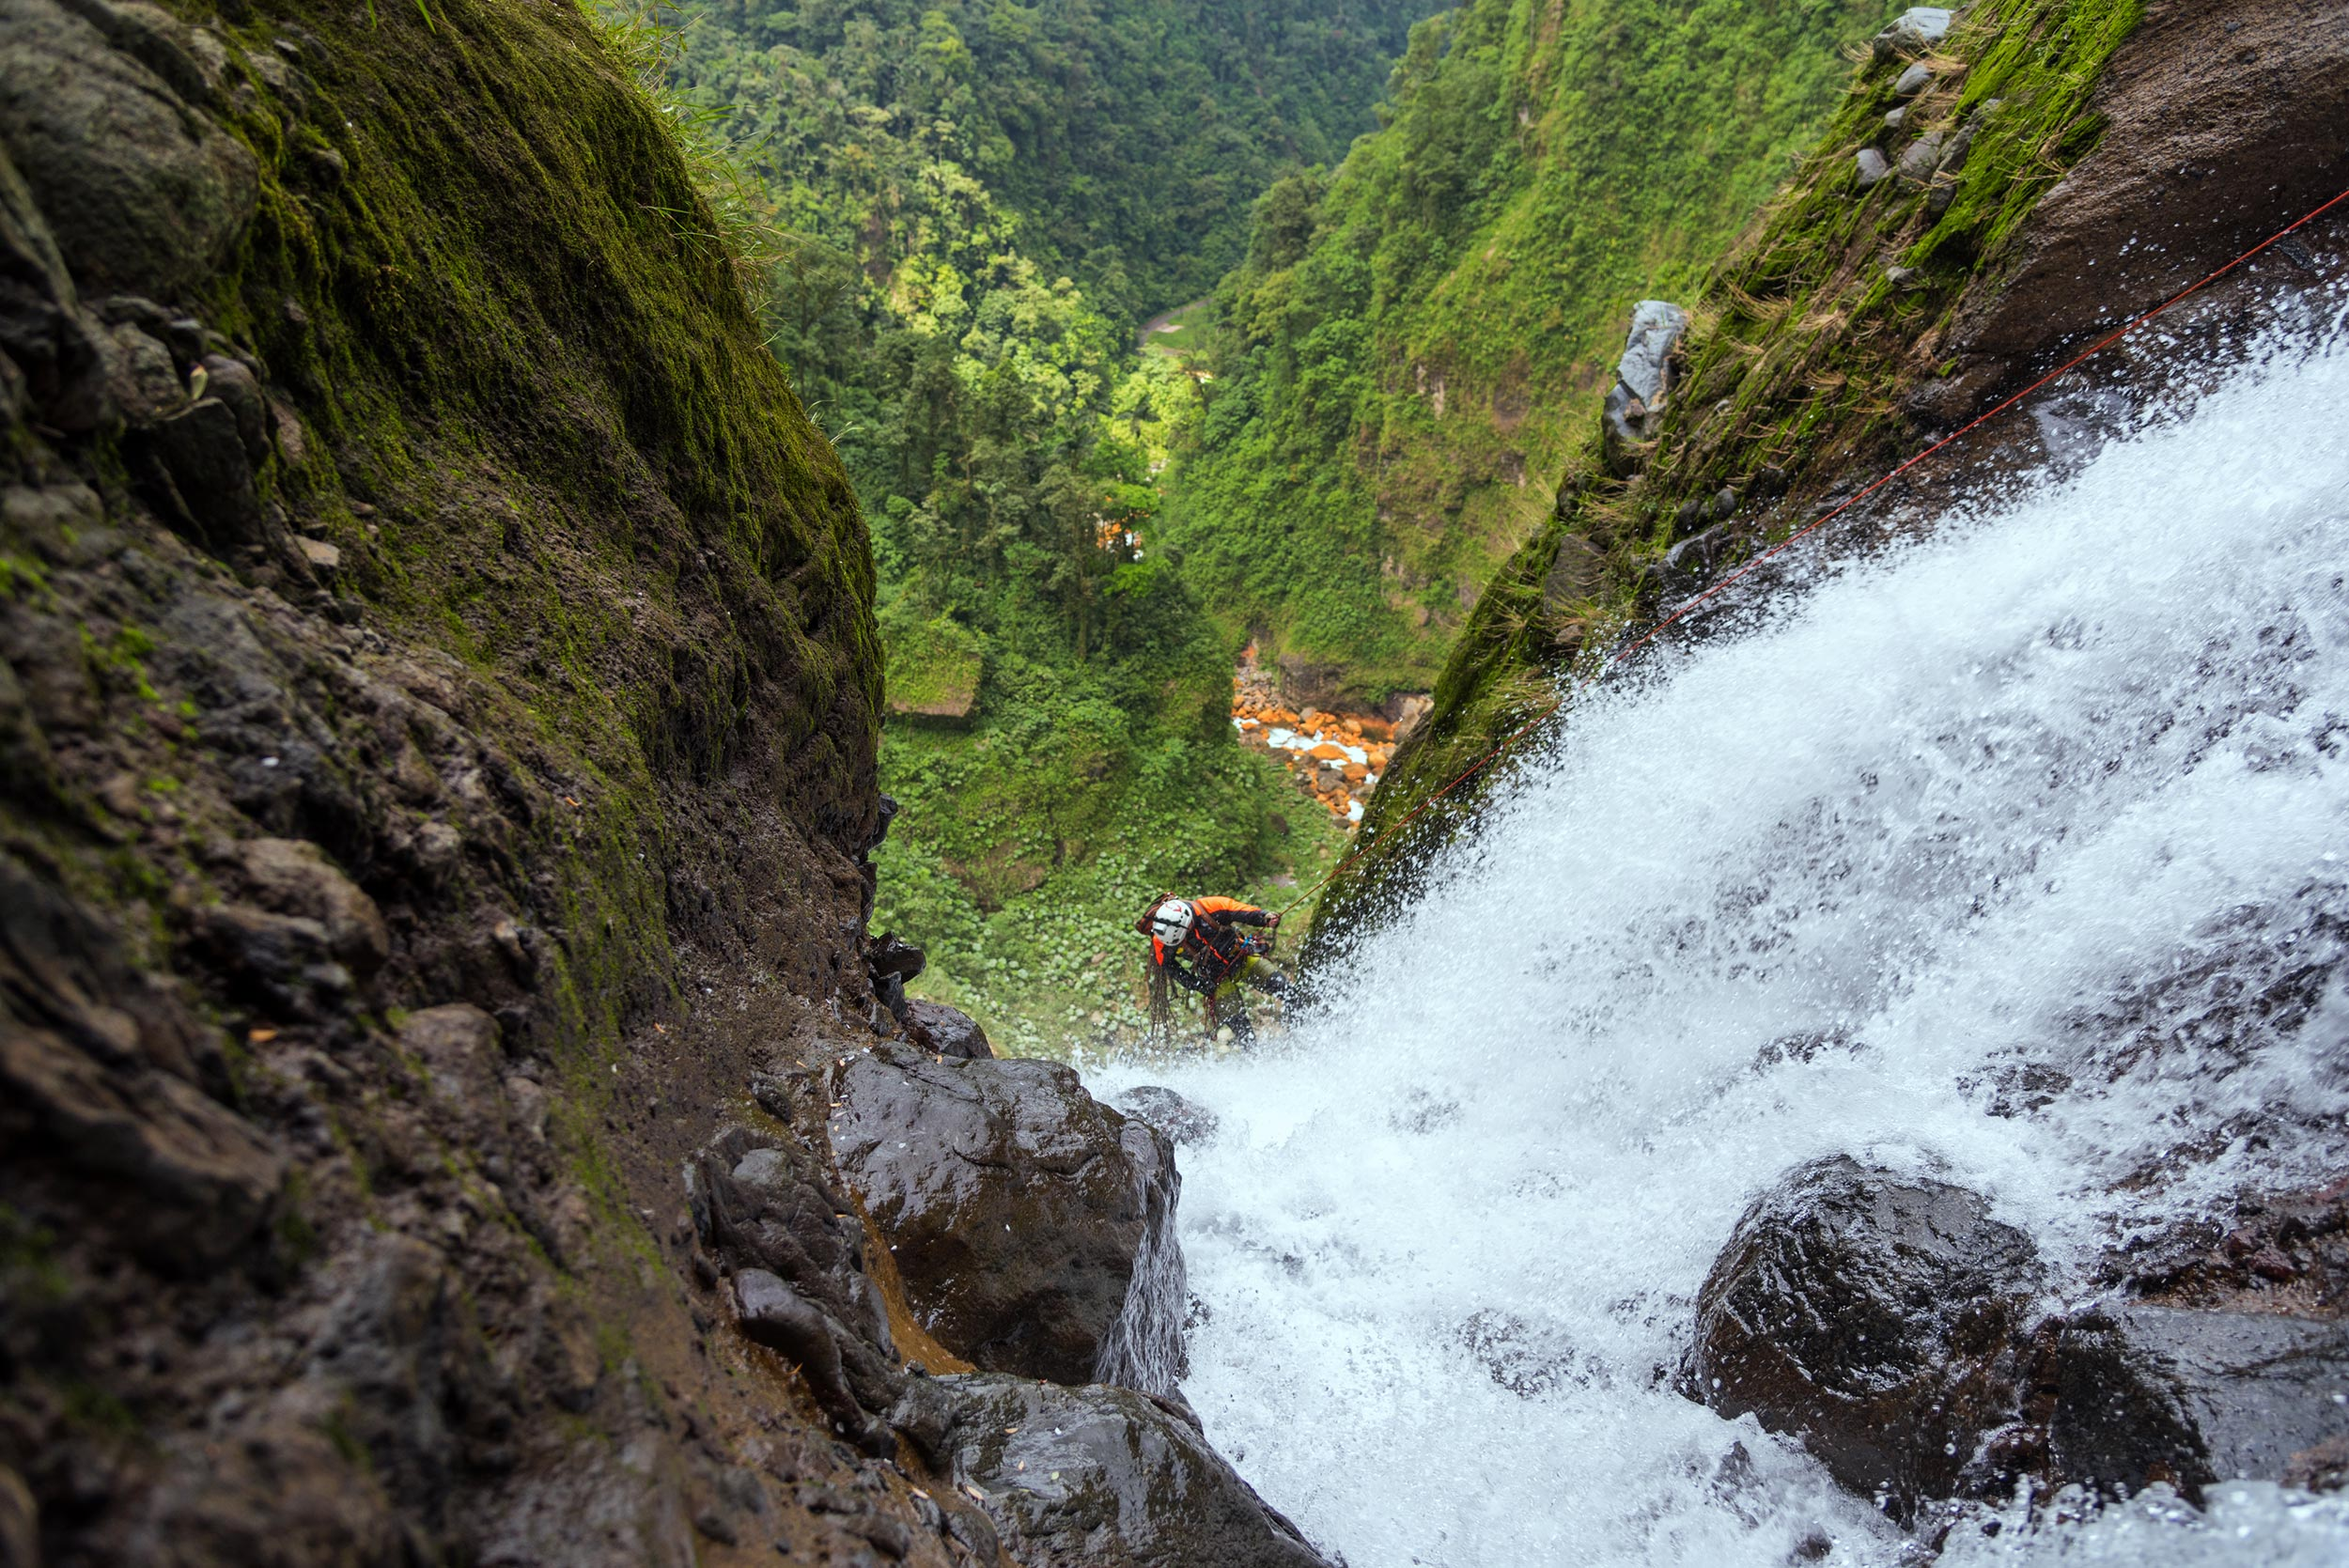 Daniel rappels off the edge of the 400 ft. monster waterfall. Photo: Victor Hugo Carvajal